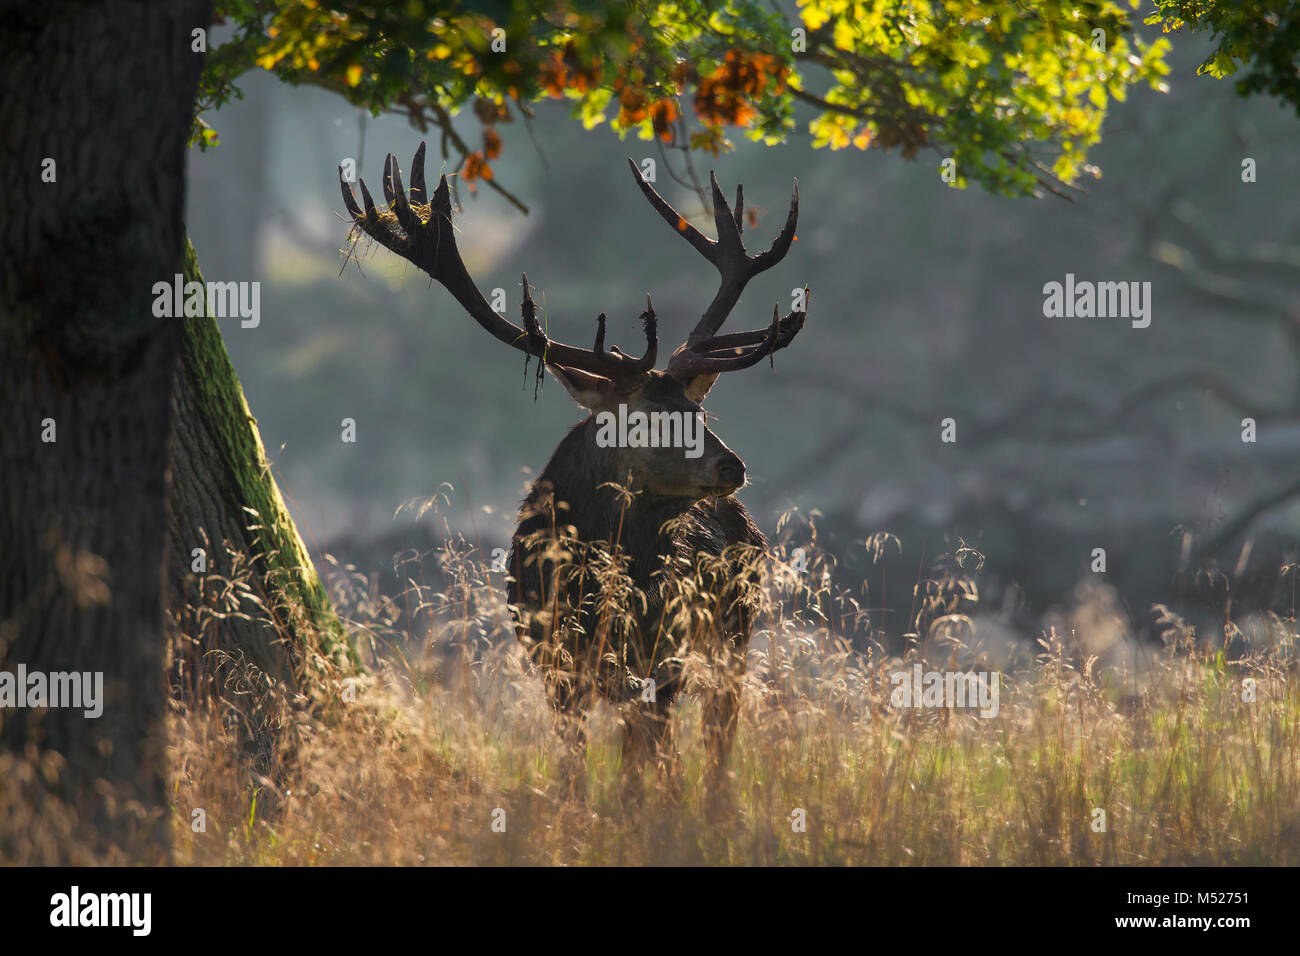 Red deer (Cervus elaphus) stag with antlers covered in mud and vegetation during the rut in autumn forest - Stock Image